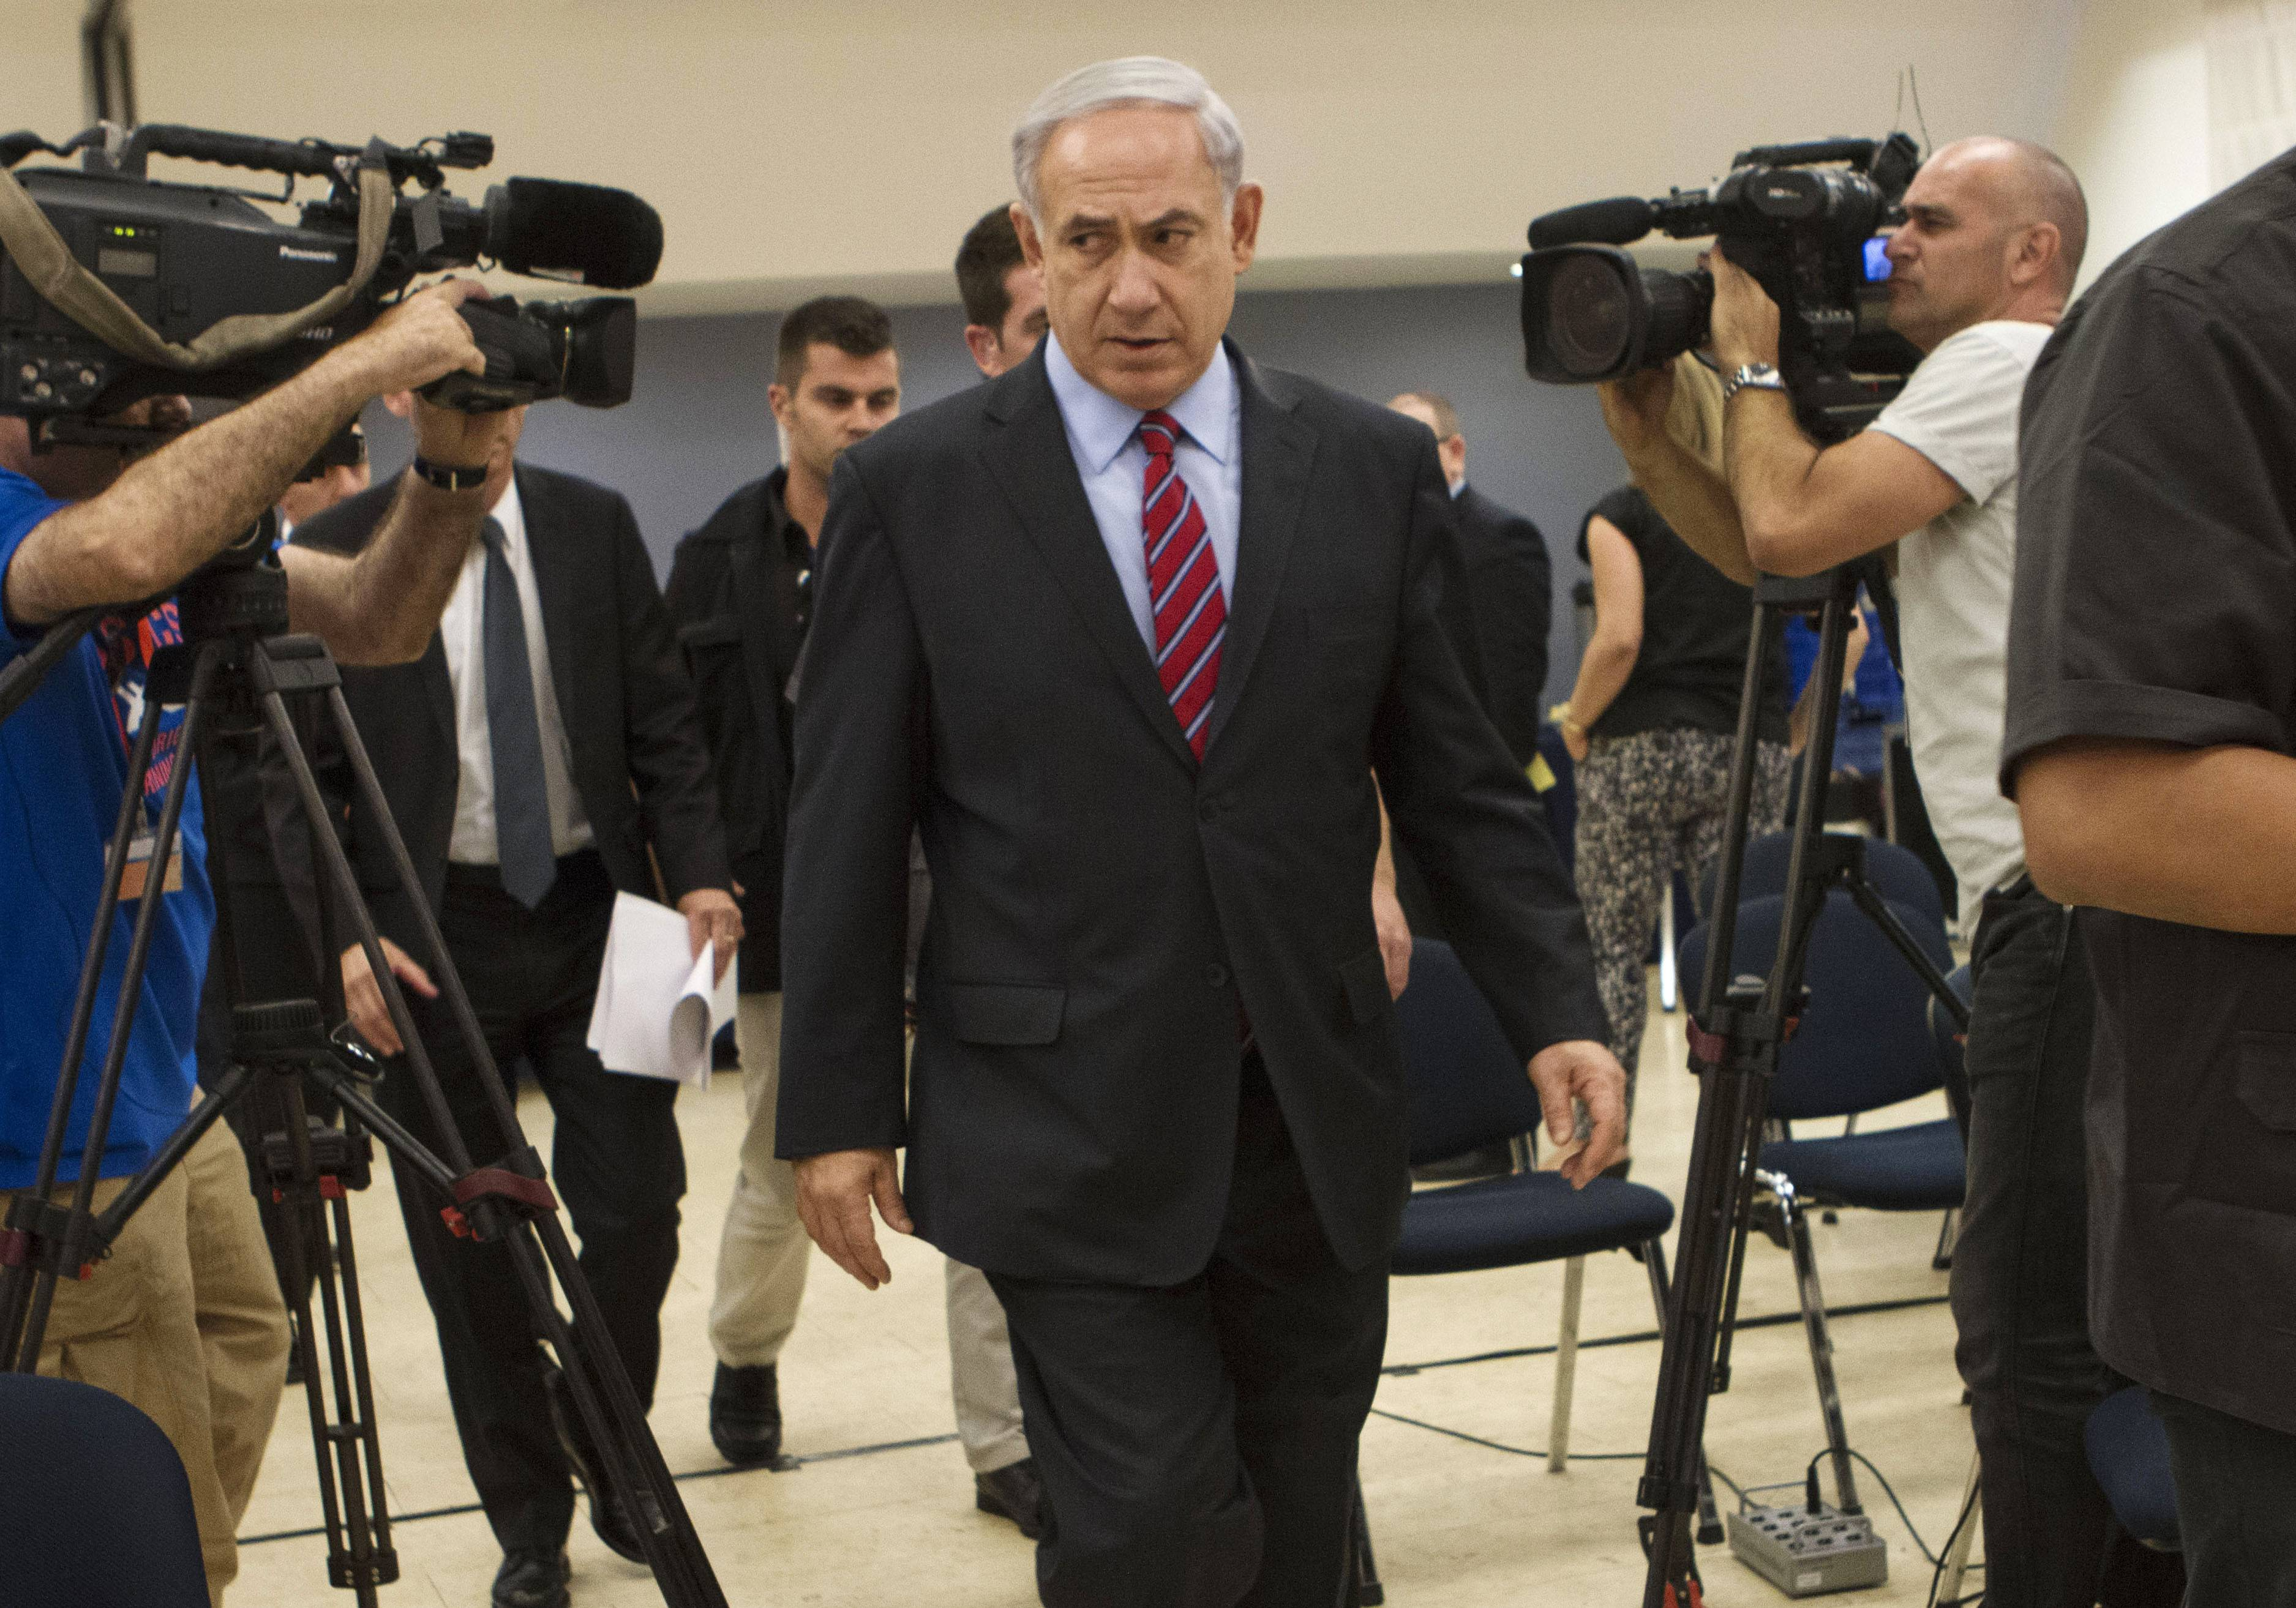 Israeli Prime Minister Benjamin Netanyahu leaves a press conference in Tel Aviv, Israel, Sunday, June 15, 2014. Netanyahu has condemned Palestinian President Mahmoud Abbas' agreement with the militant group, and said he would hold him responsible for the safety of the youths, who disappeared apparently while hitchhiking in the West Bank late Thursday.